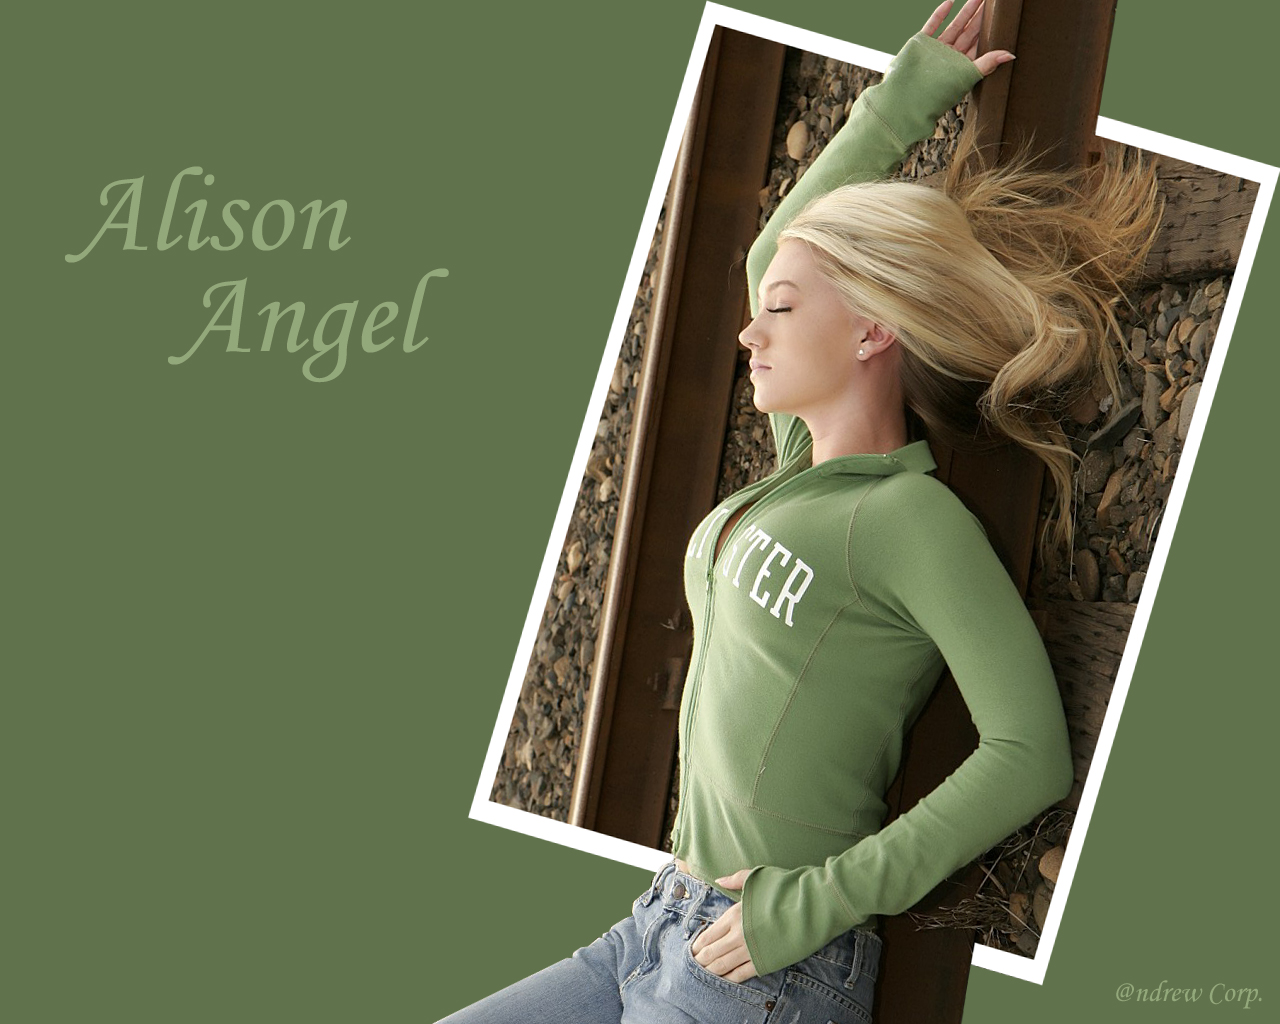 You are viewing the Alison Angel wallpaper named Alison angel 1. It ...